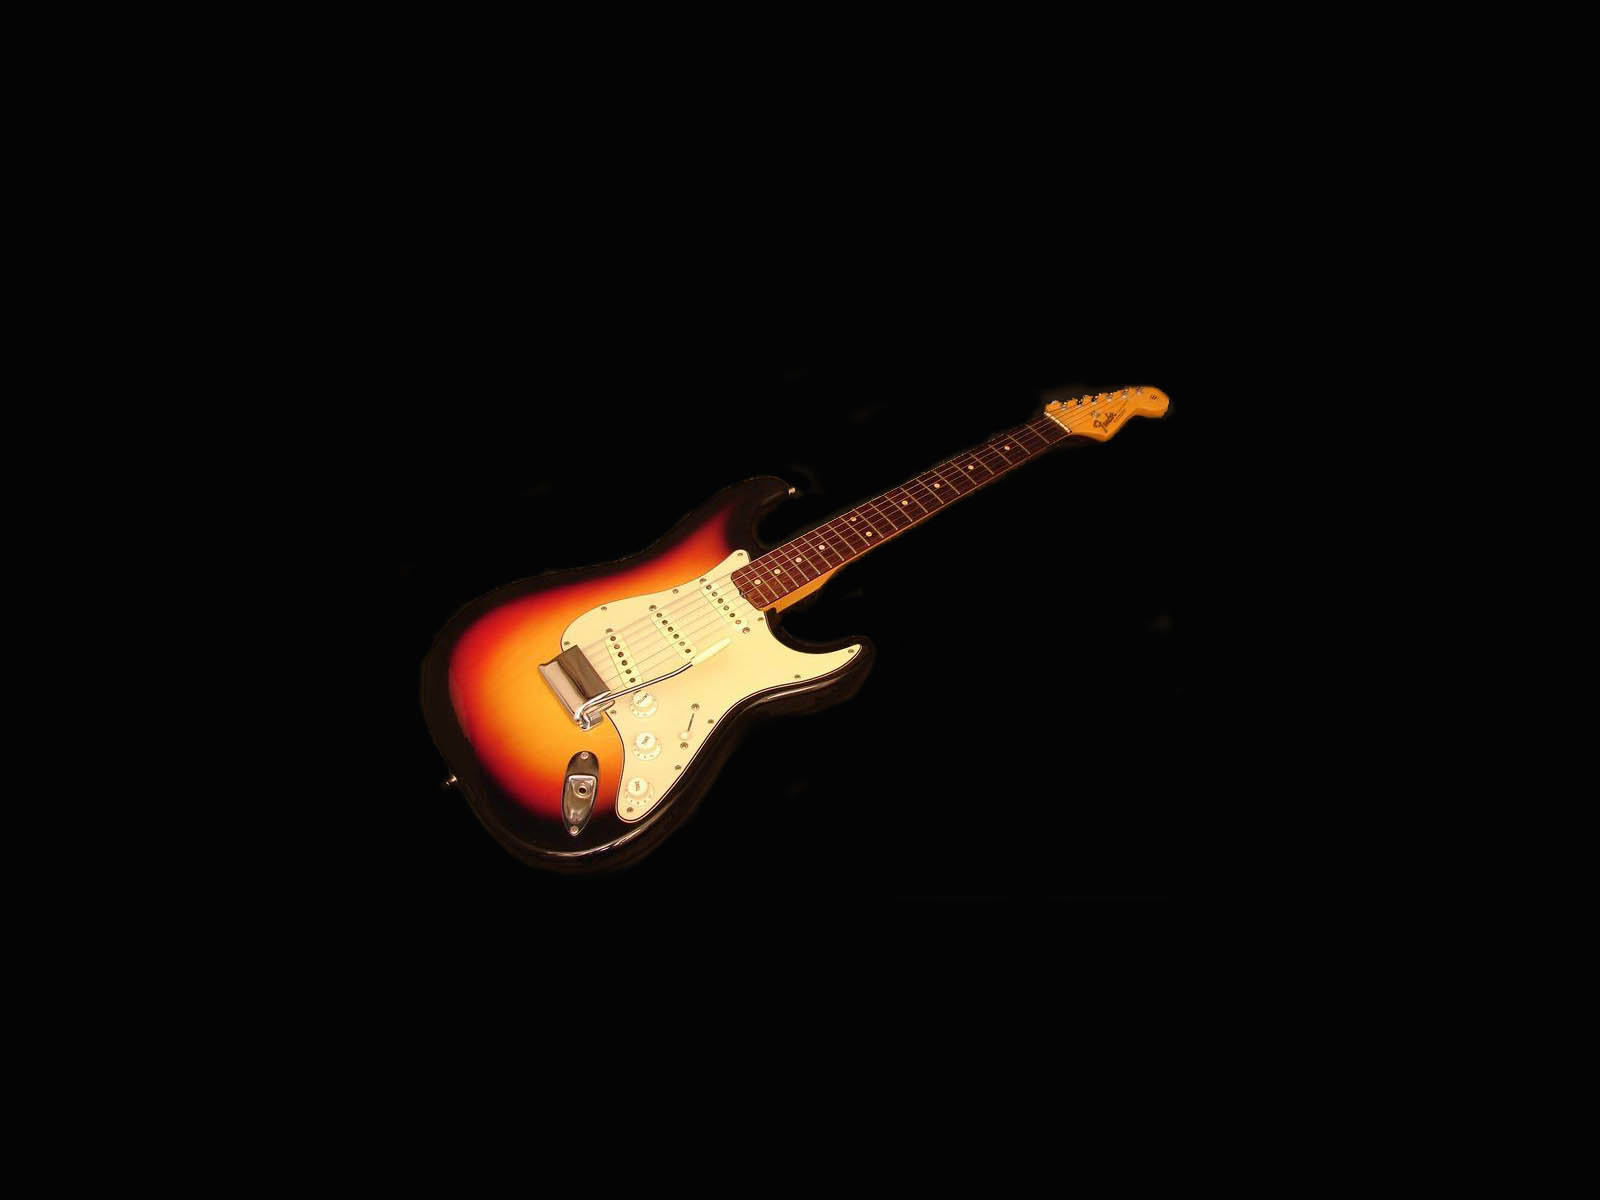 Guitar Fender Wallpaper 17375 Hd Wallpapers in Music   Imagescicom 1600x1200